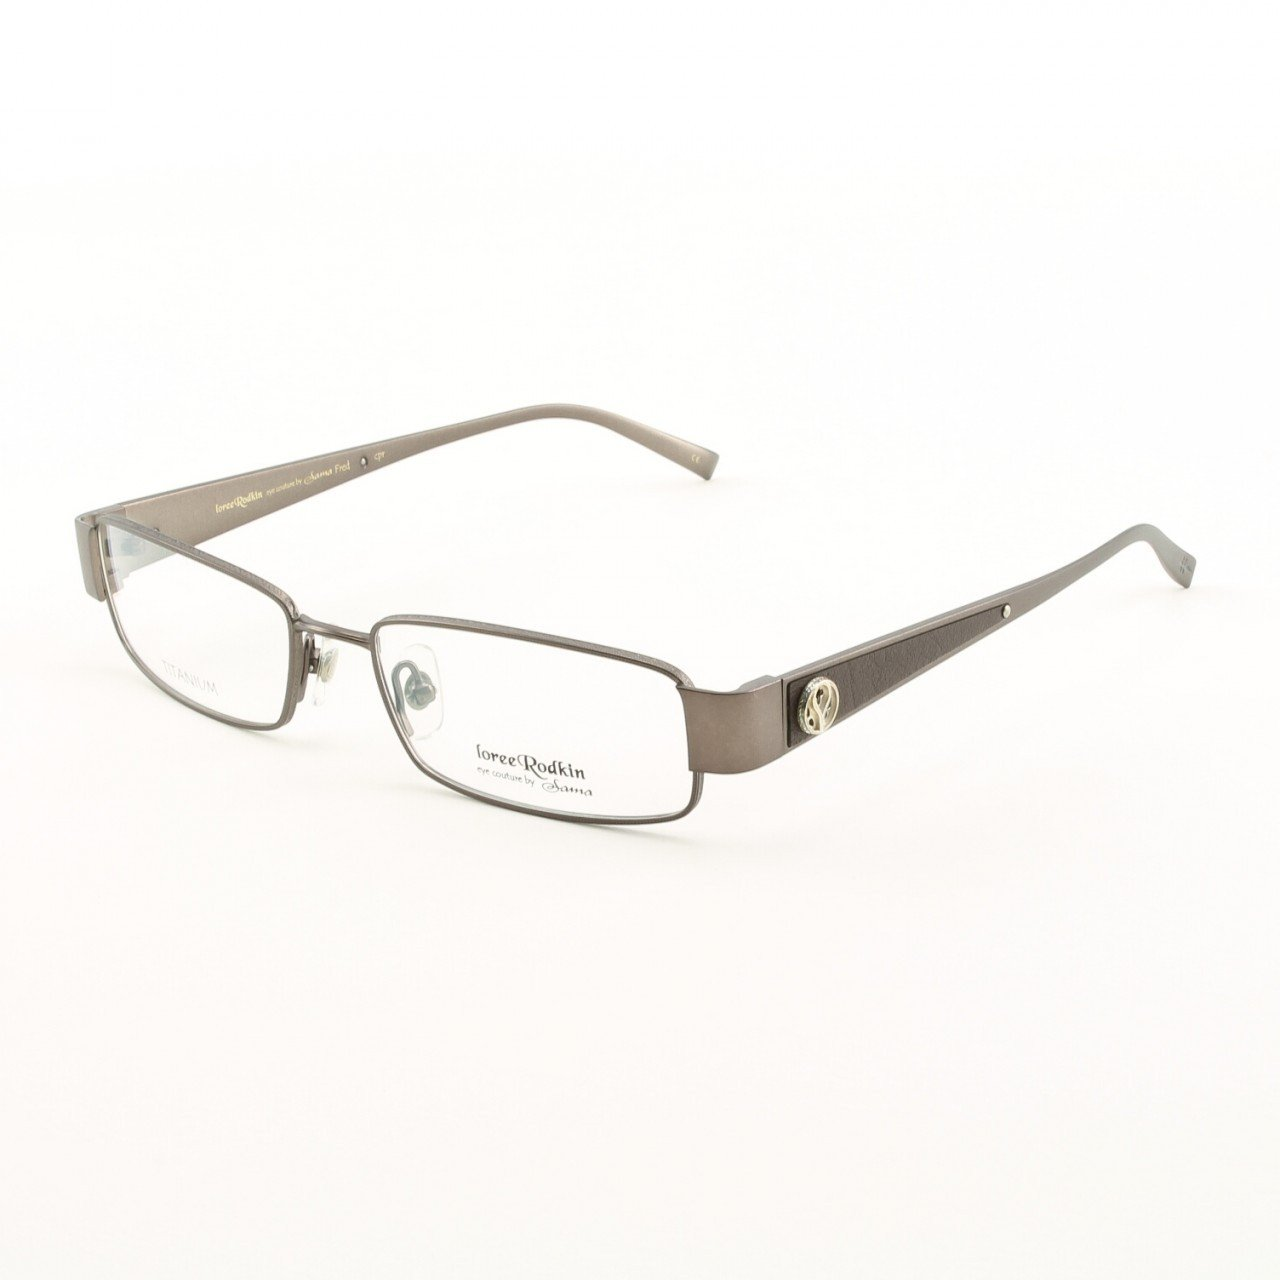 Loree Rodkin Fred Eyeglasses by Sama Col. Copper with Clear Lenses, Leather and Sterling Silver